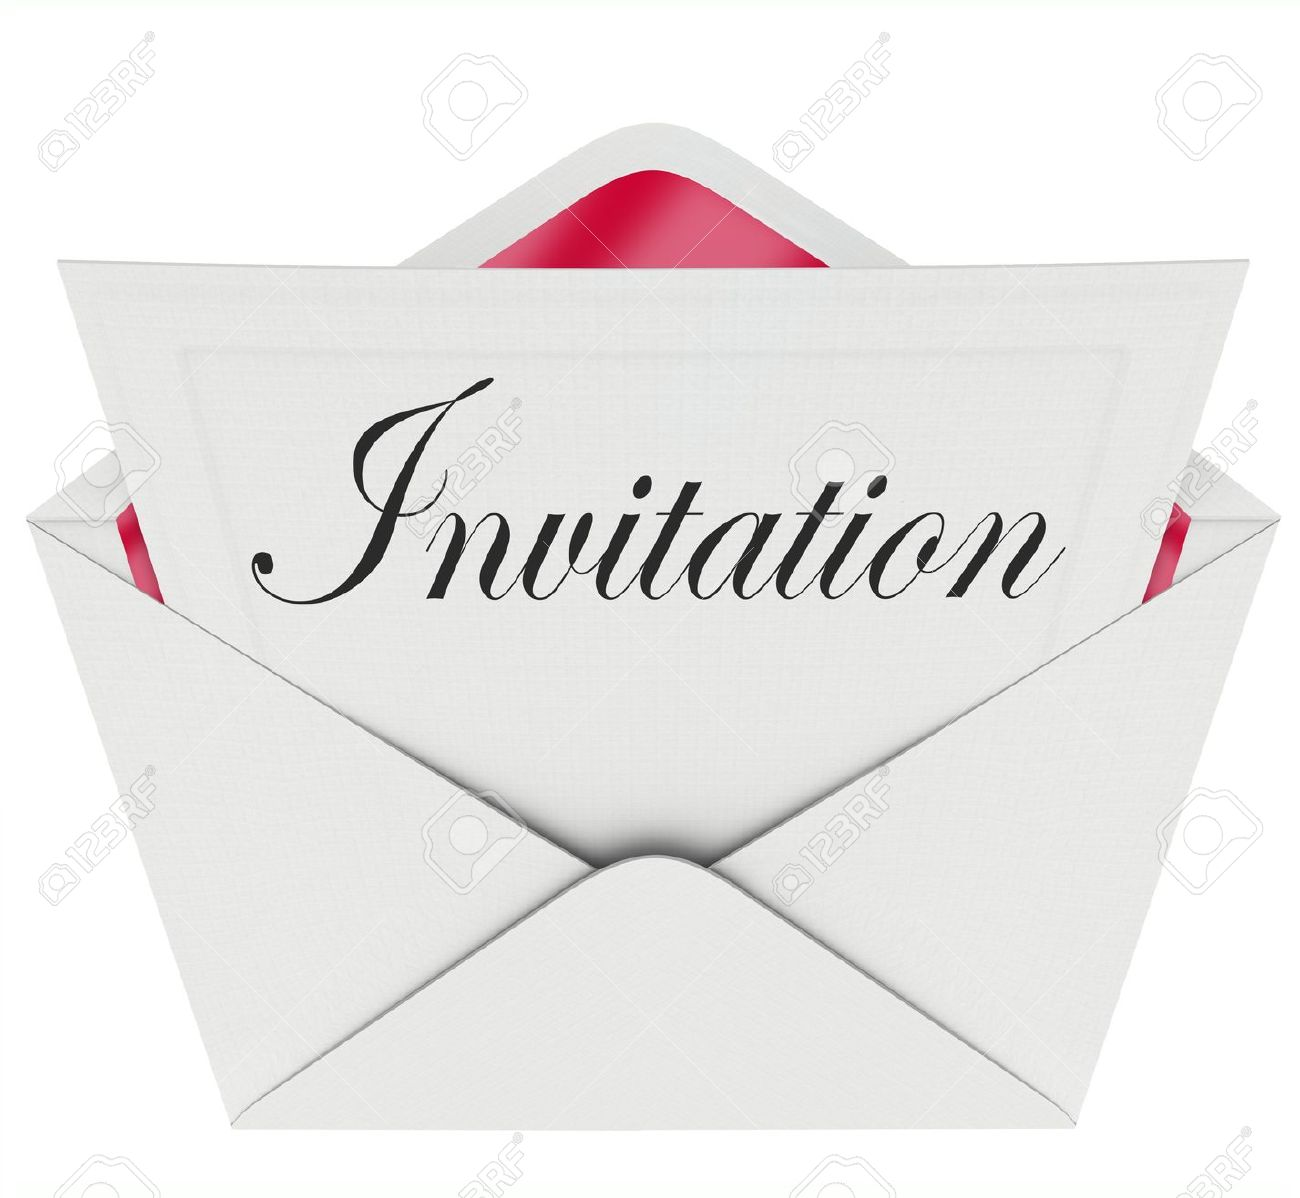 the word invitation on a card in an envelope formally inviting